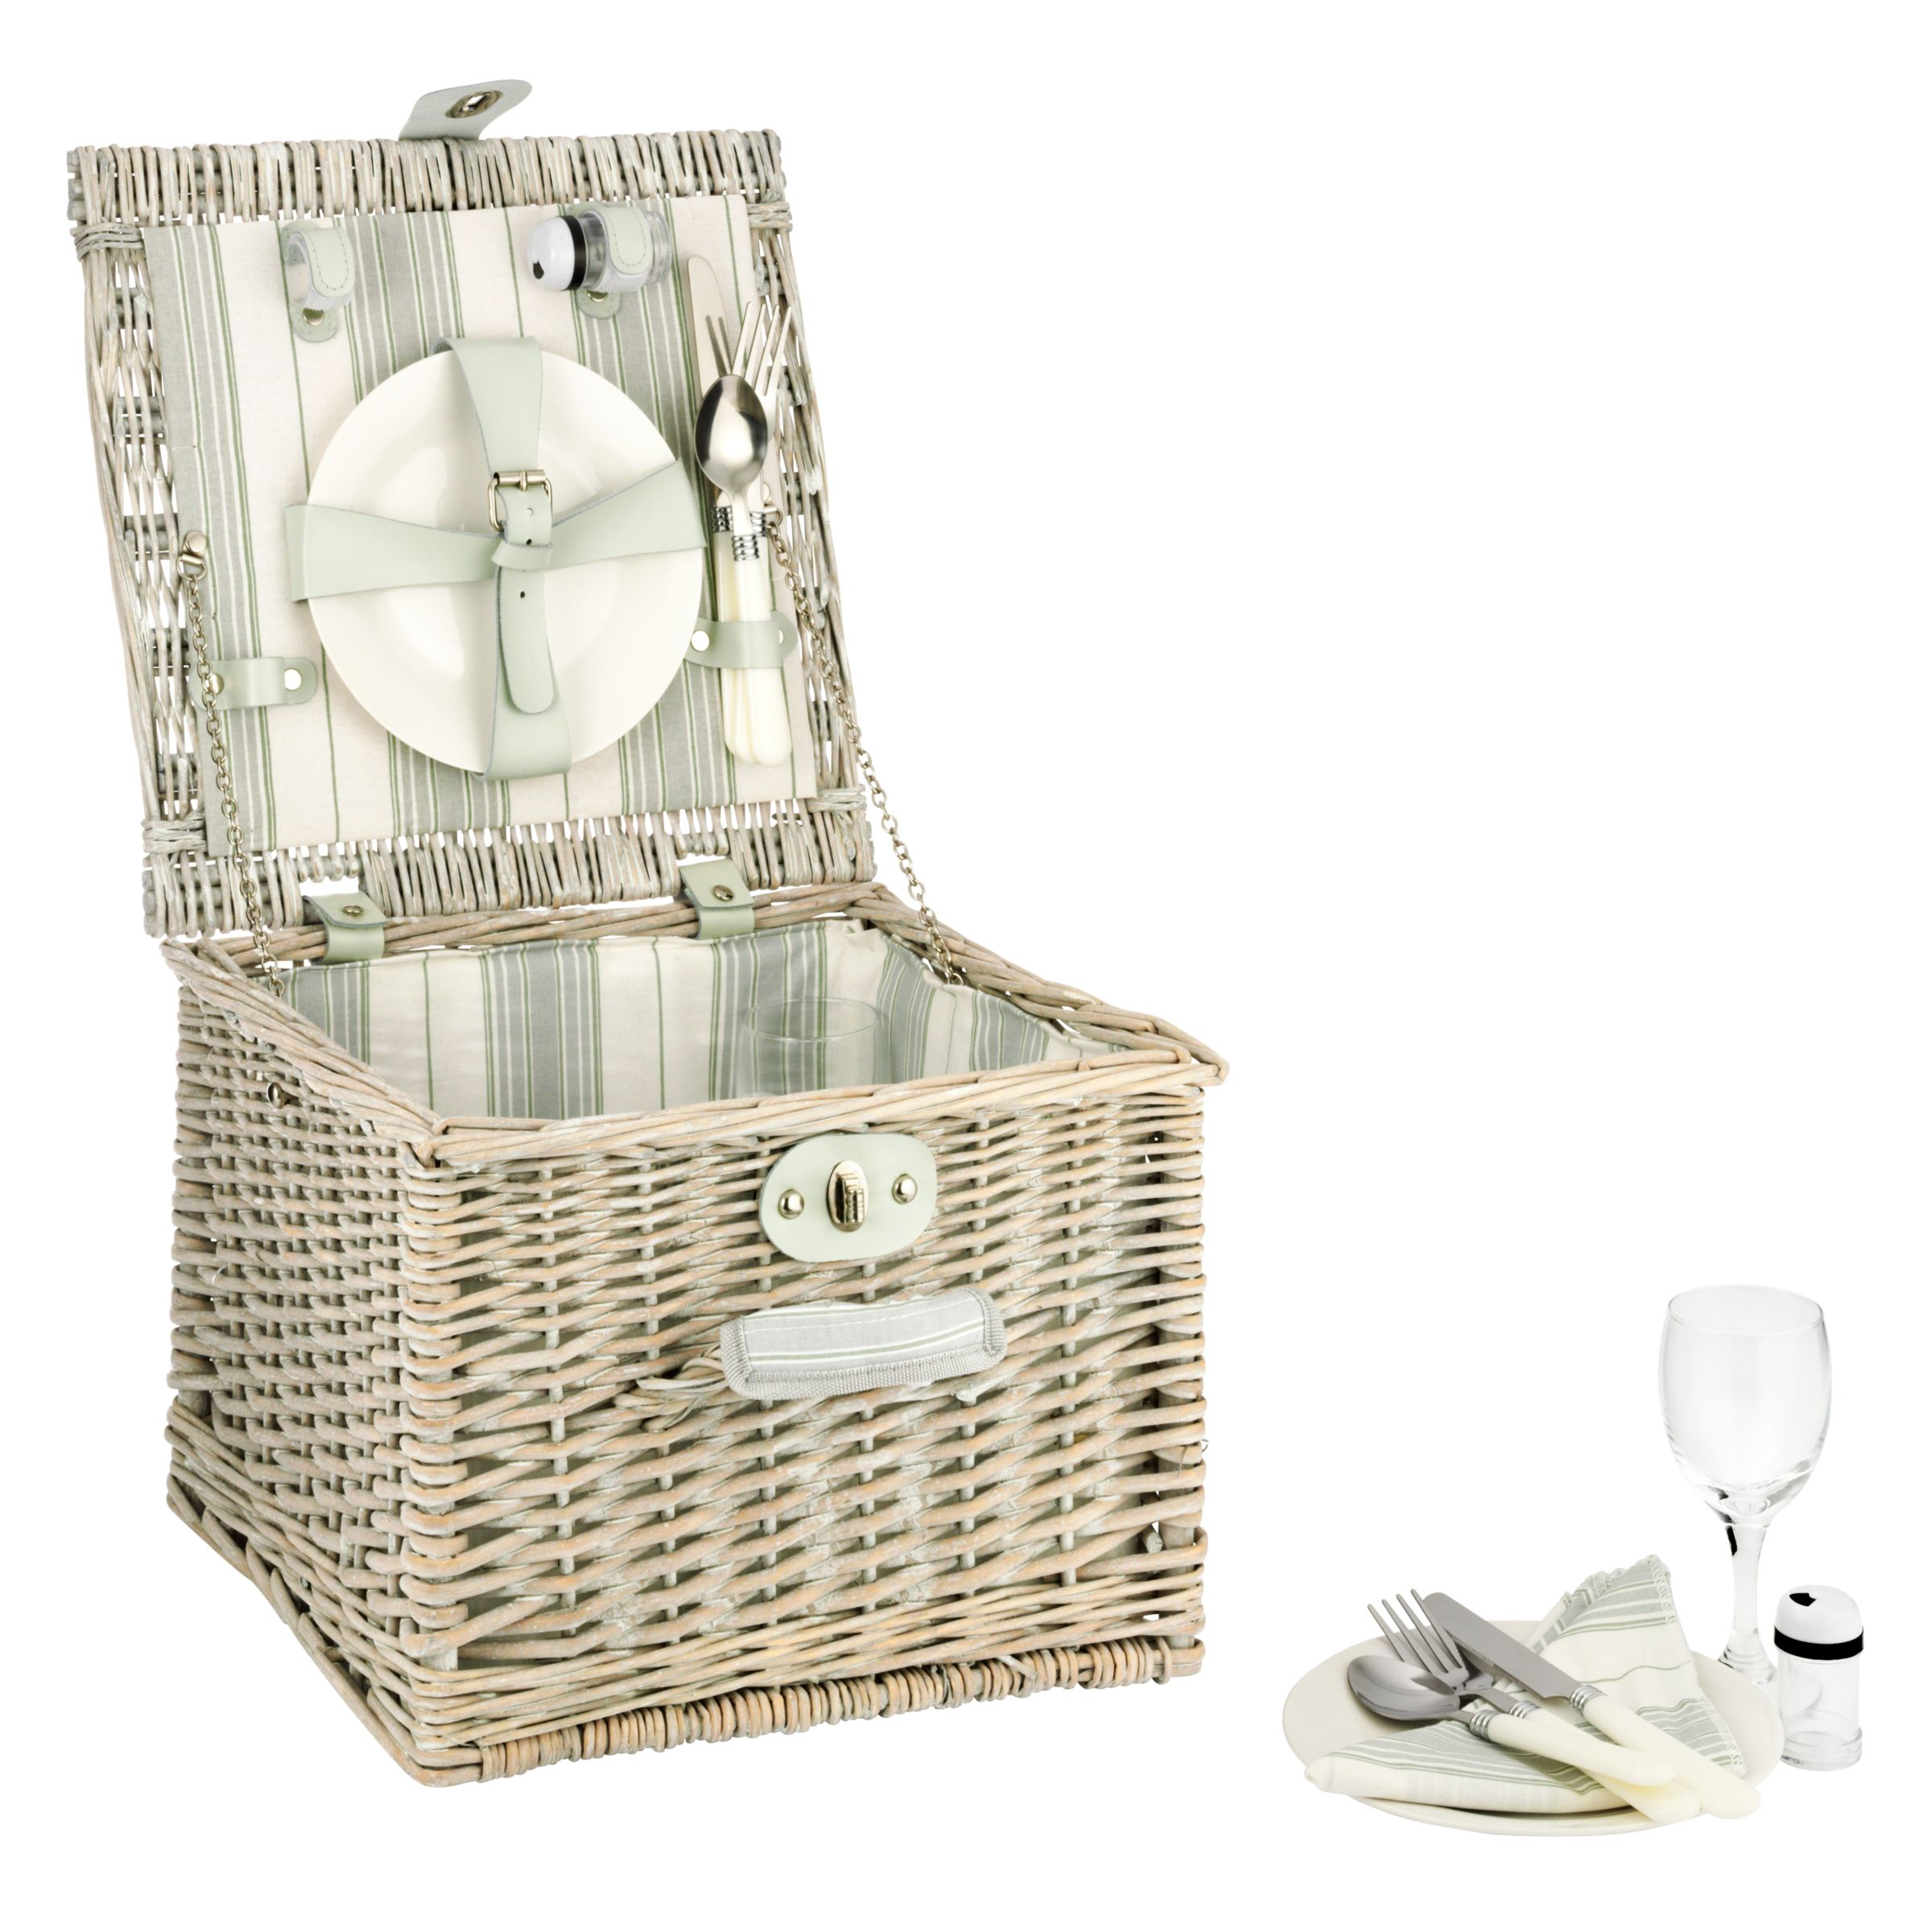 John Lewis Maison Gold Willow Hamper, 2 Persons